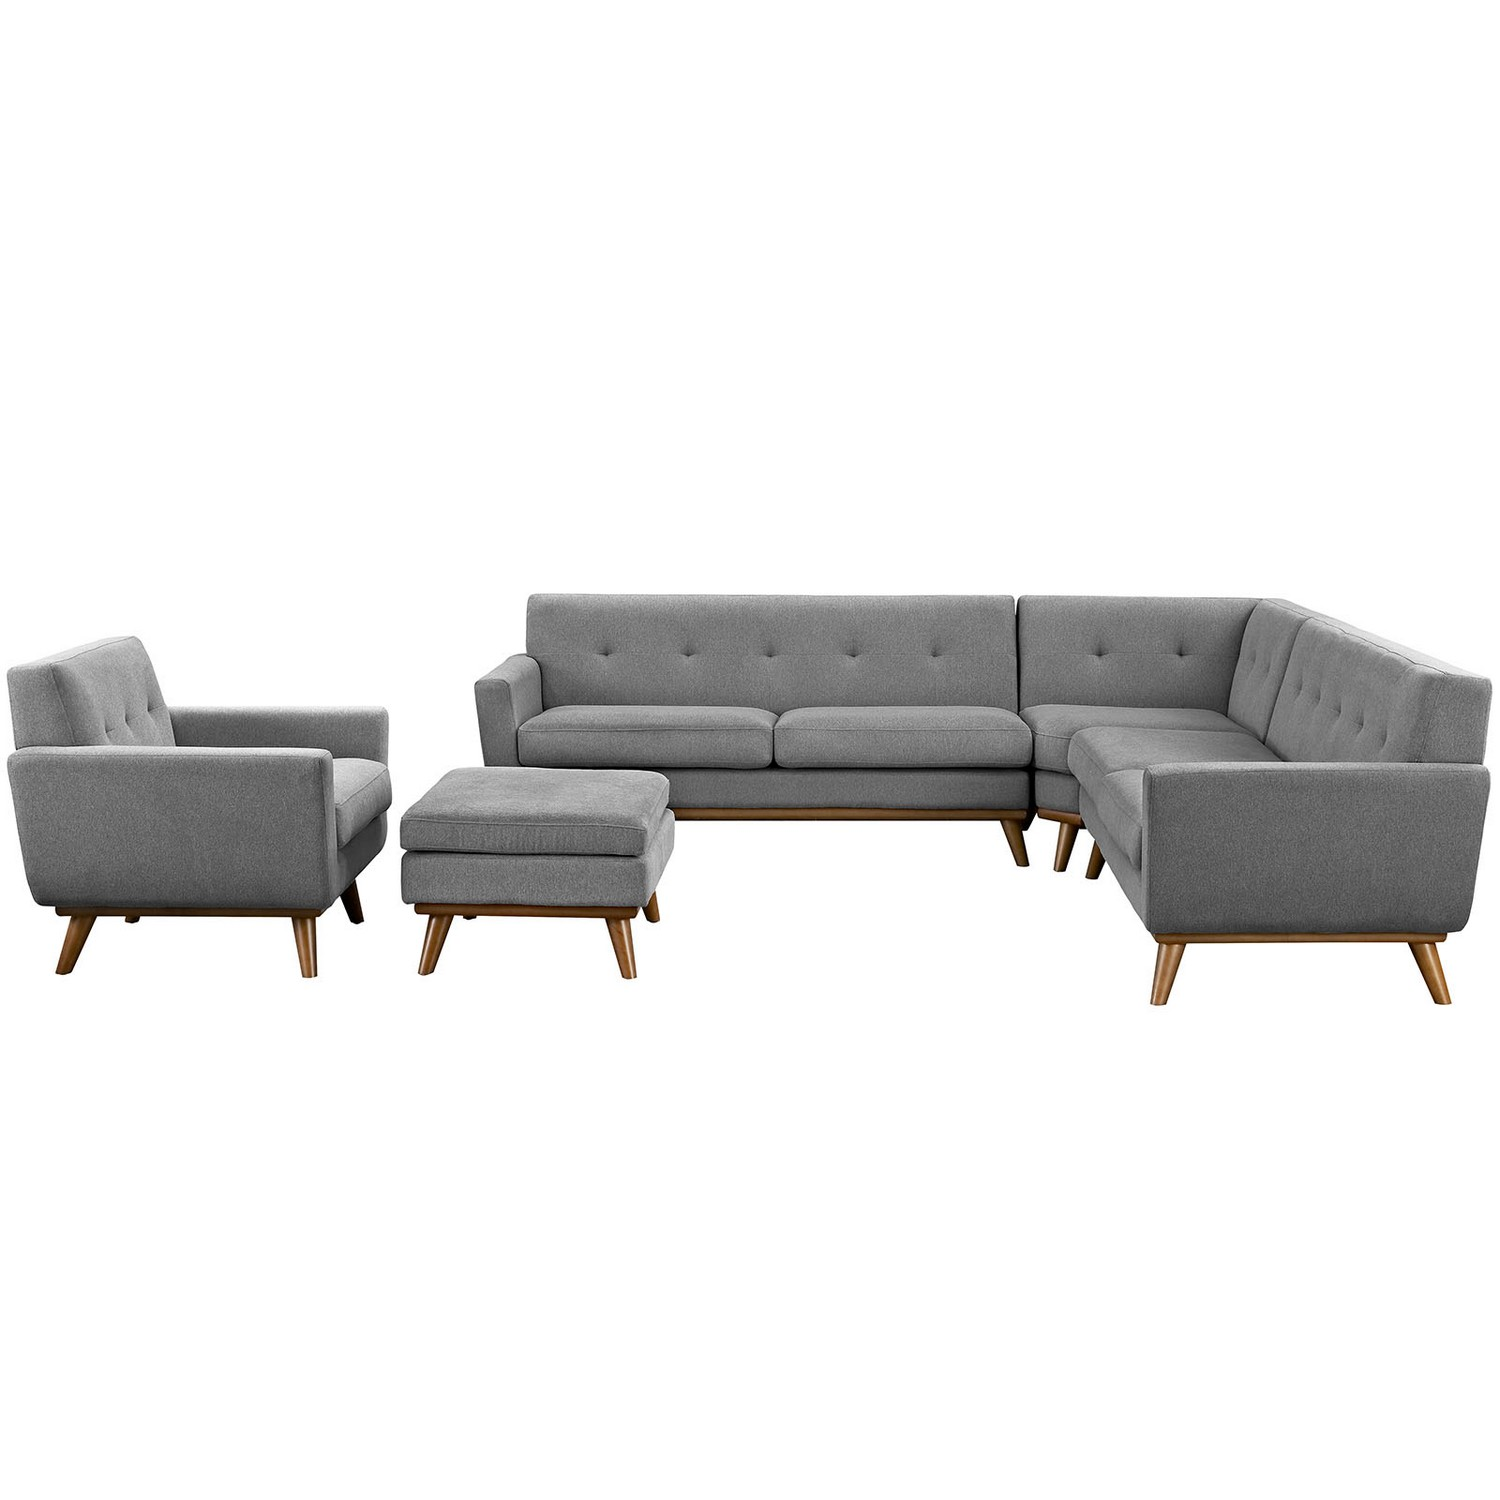 Modway Engage 5 Piece Sectional Sofa - Gray